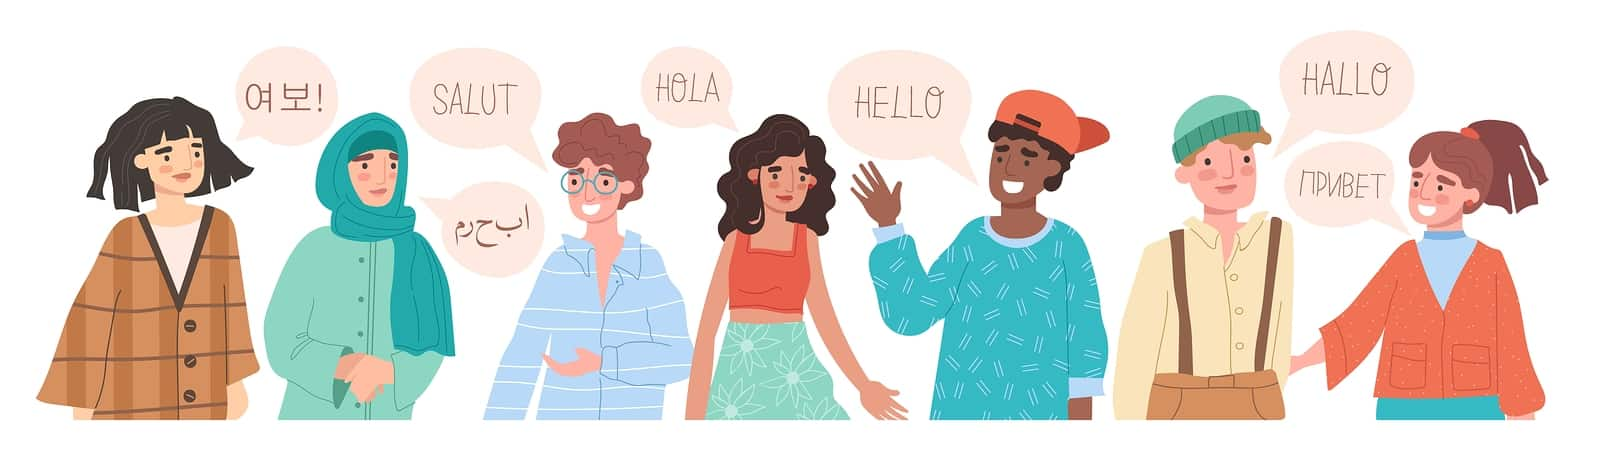 Illustration of people speaking different languages